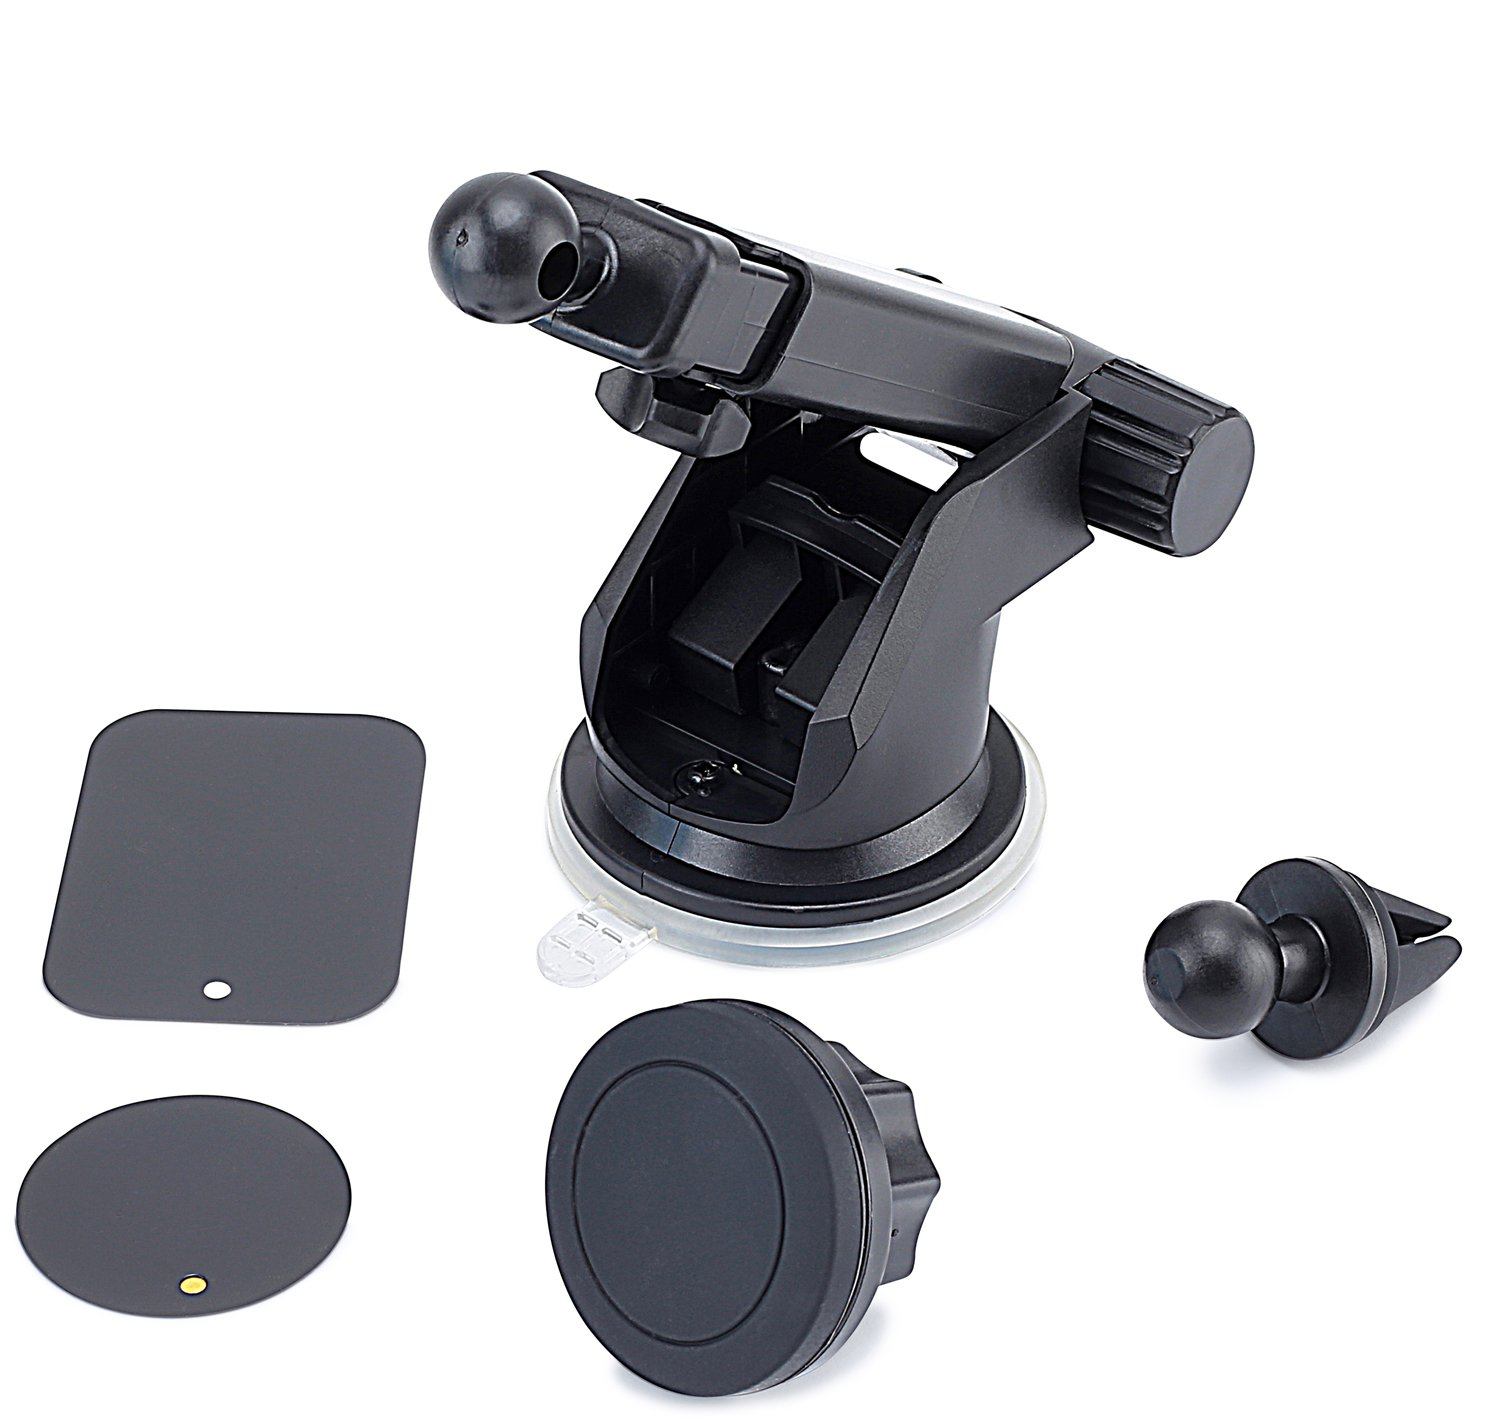 Windshield//Air Vent Car Mount Holder HandiPro 4351556242 for All Smartphones//and Other Devices and GPS